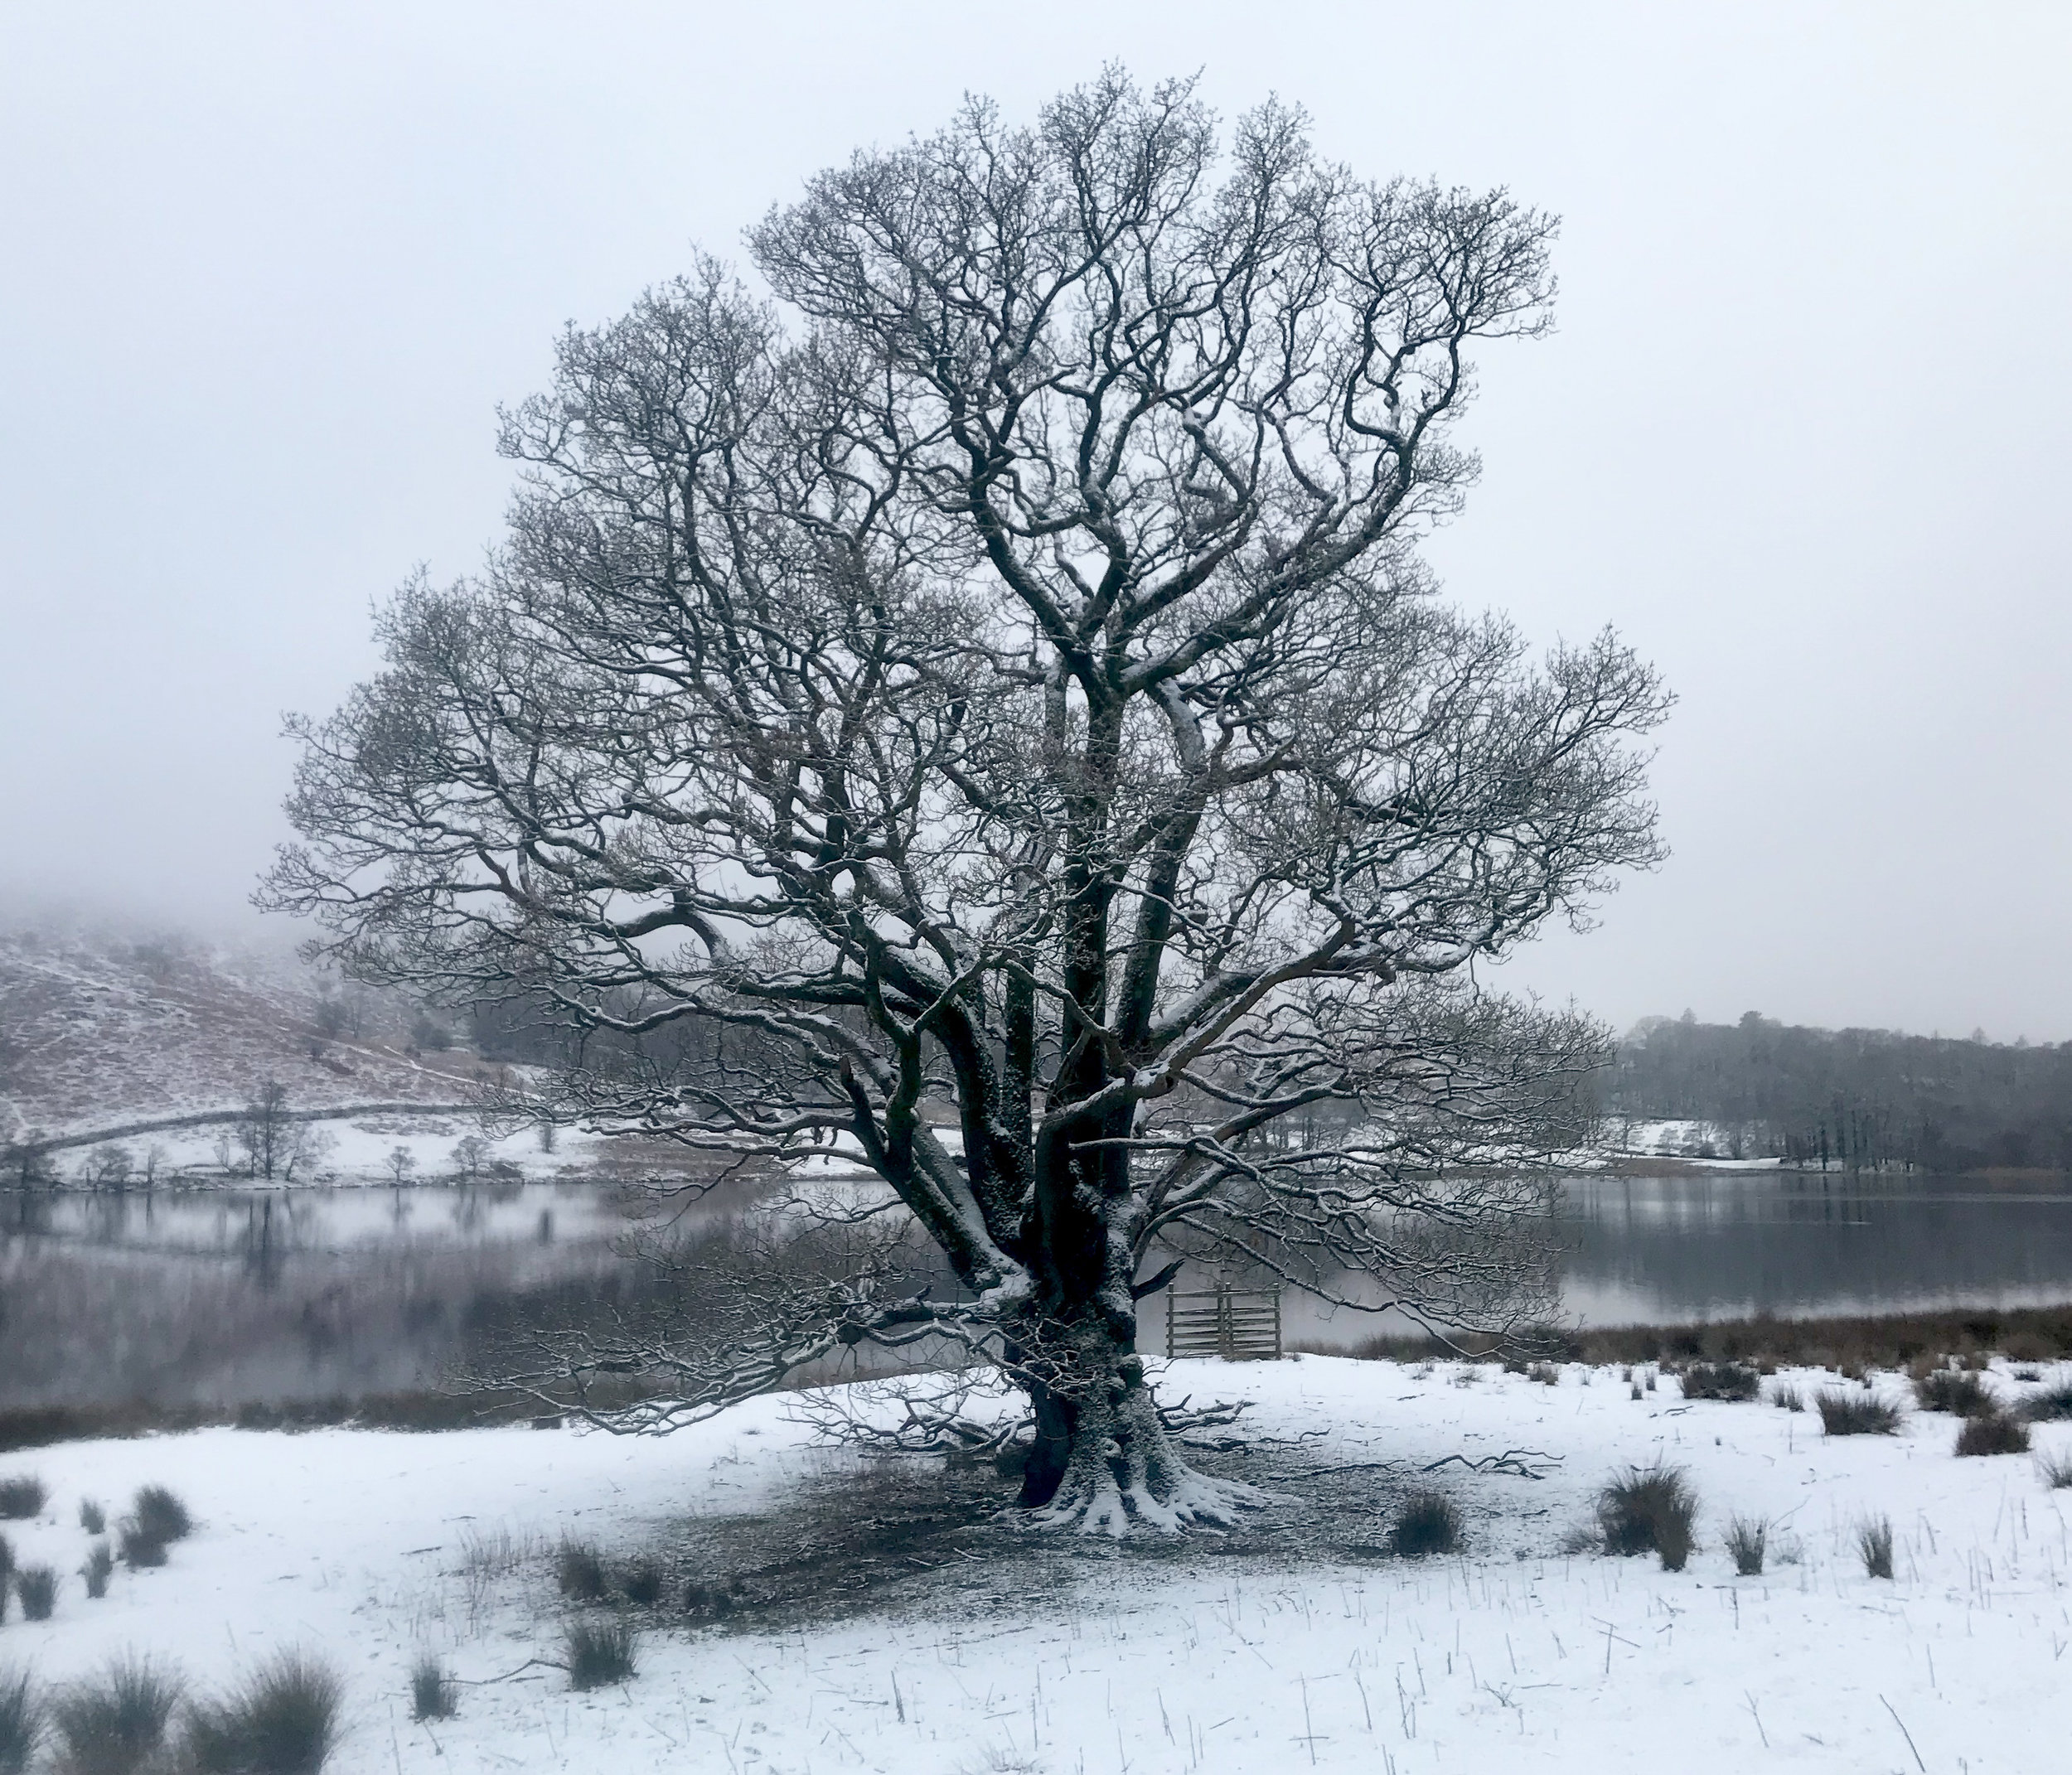 Winter Tree at Rydal Water